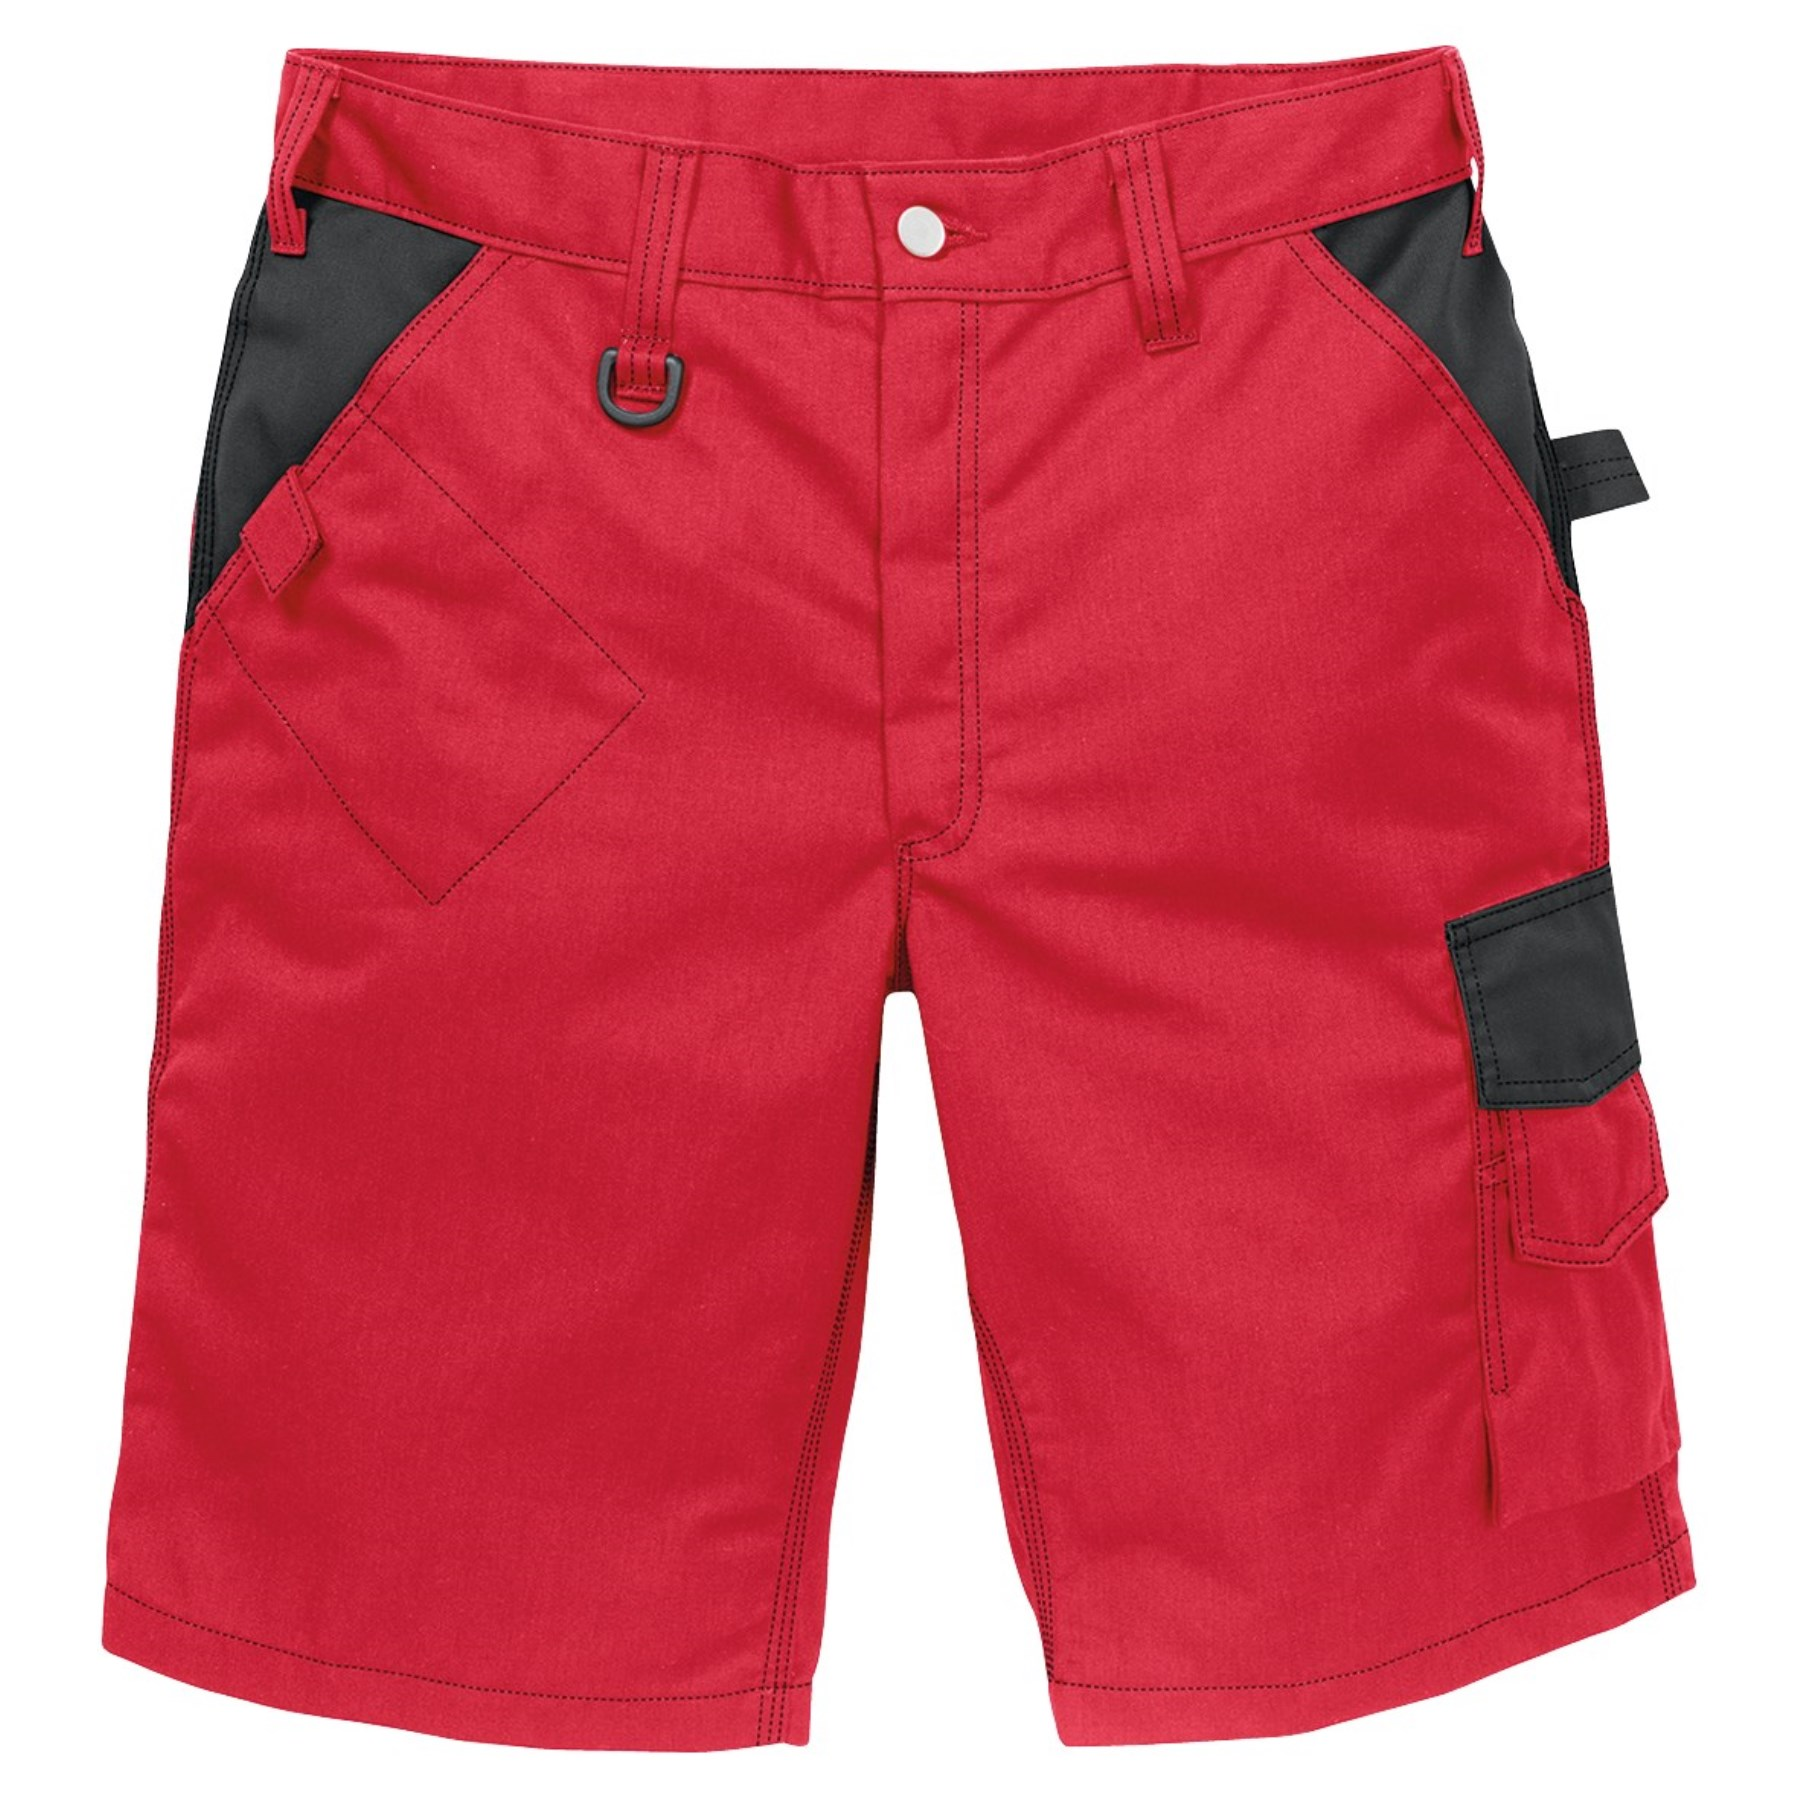 1223474 - Shorts Icon Cool 114105